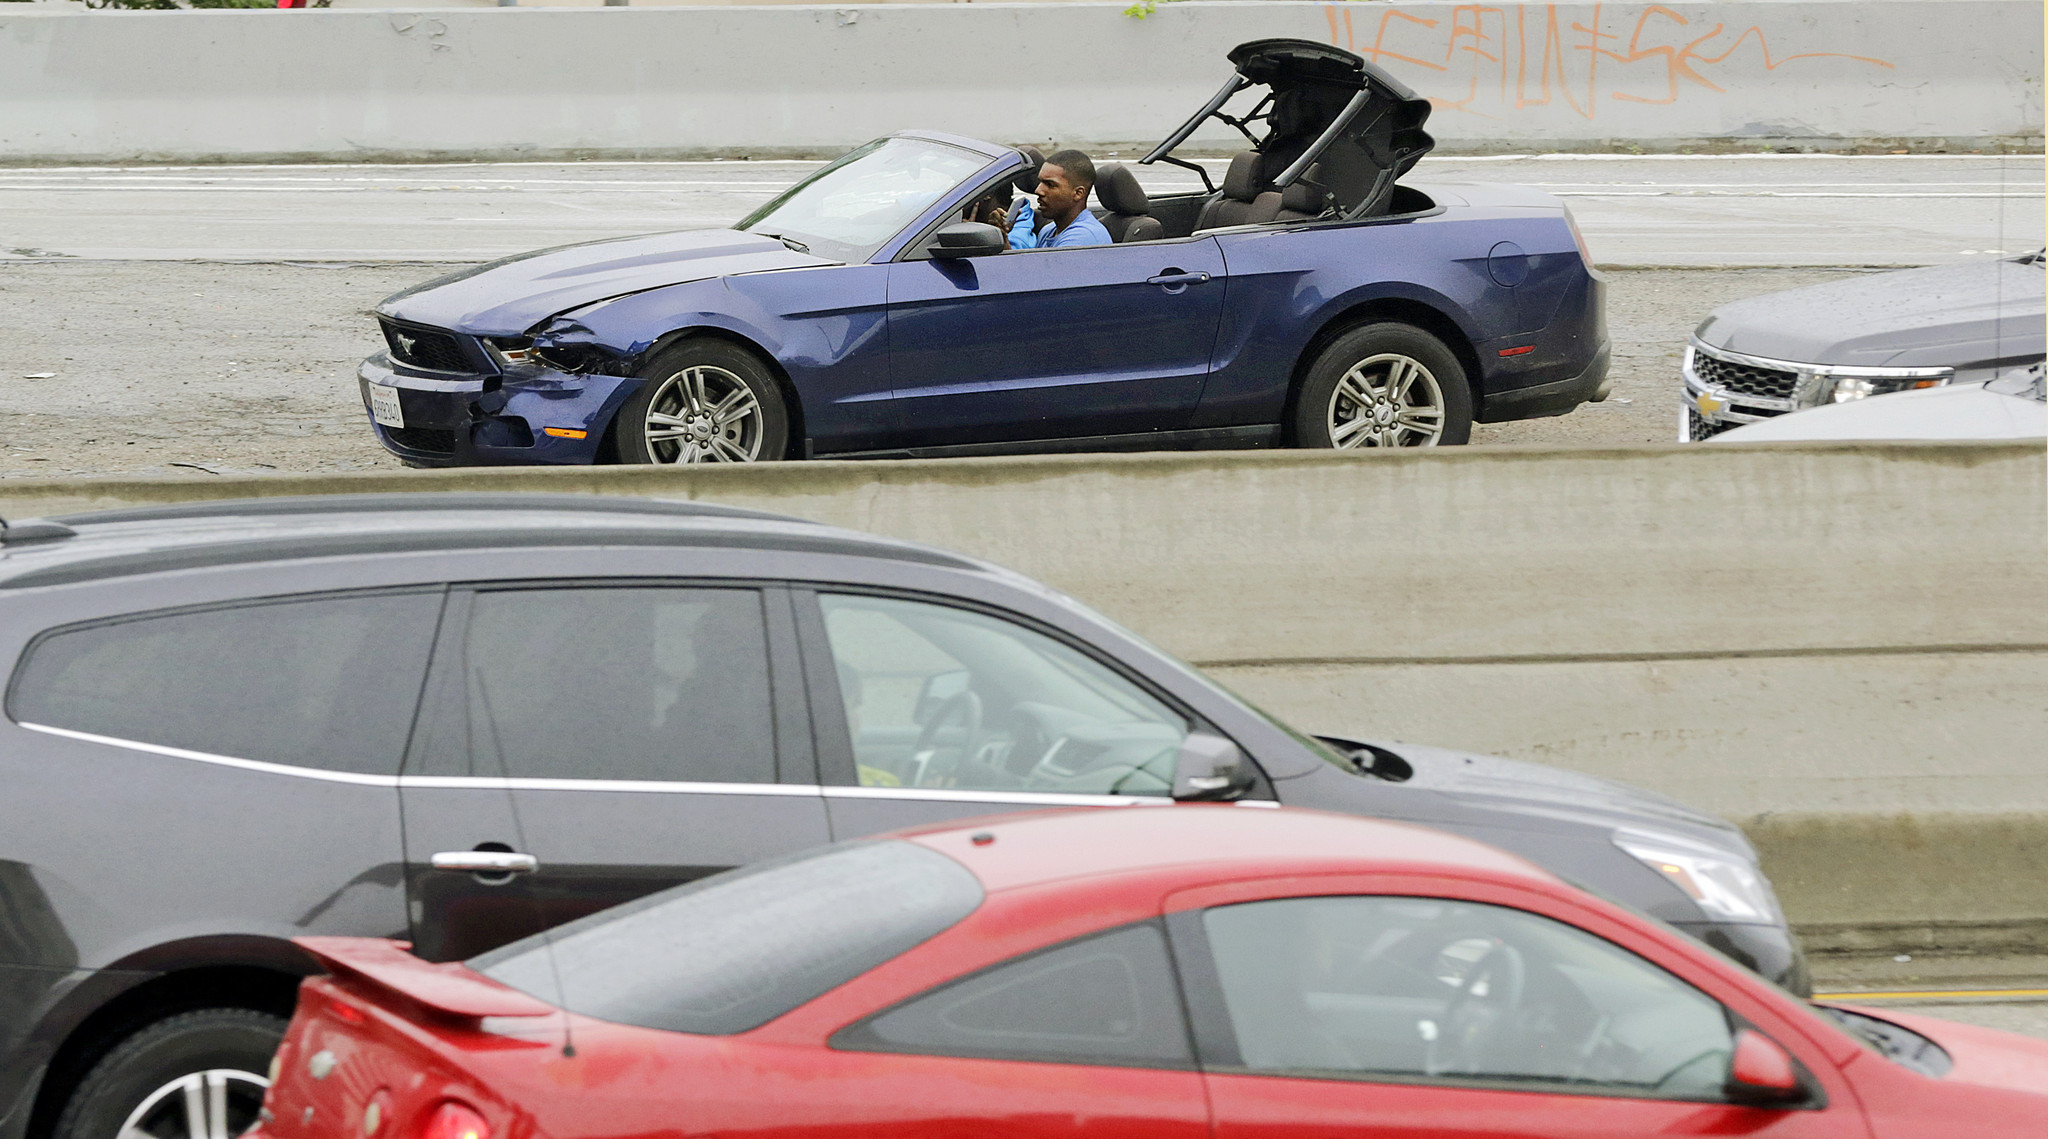 Epic L.A. car chase led by man trained to drive by U.S. military